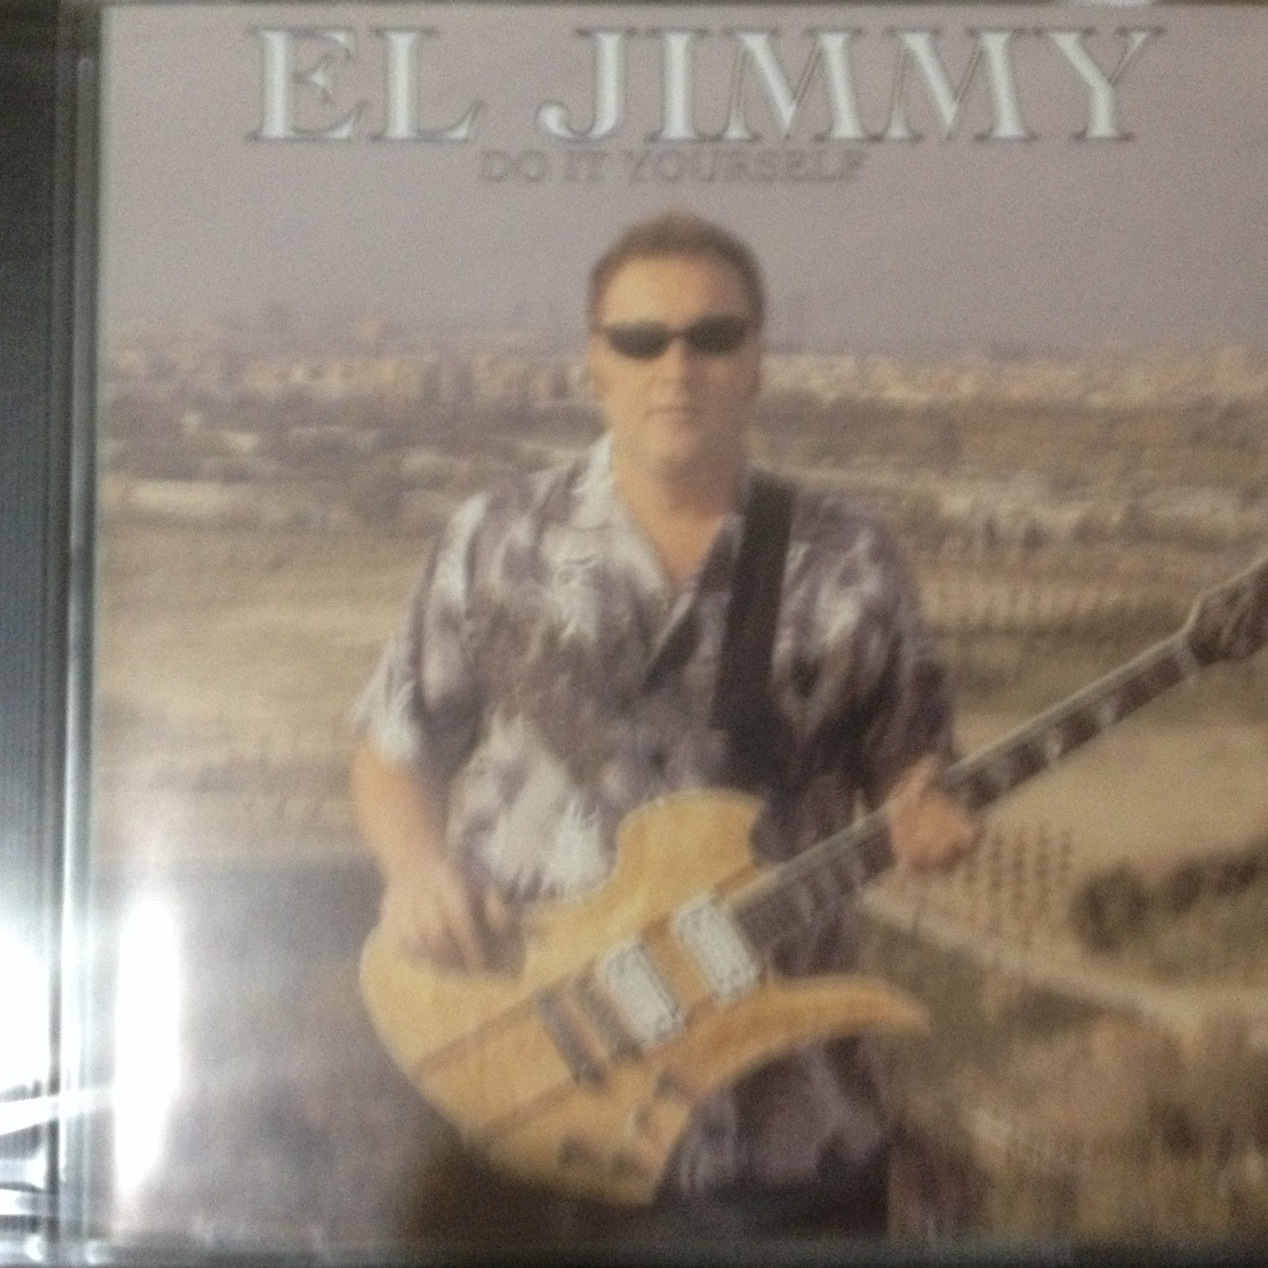 ELJIMMY d.i.y. COVER